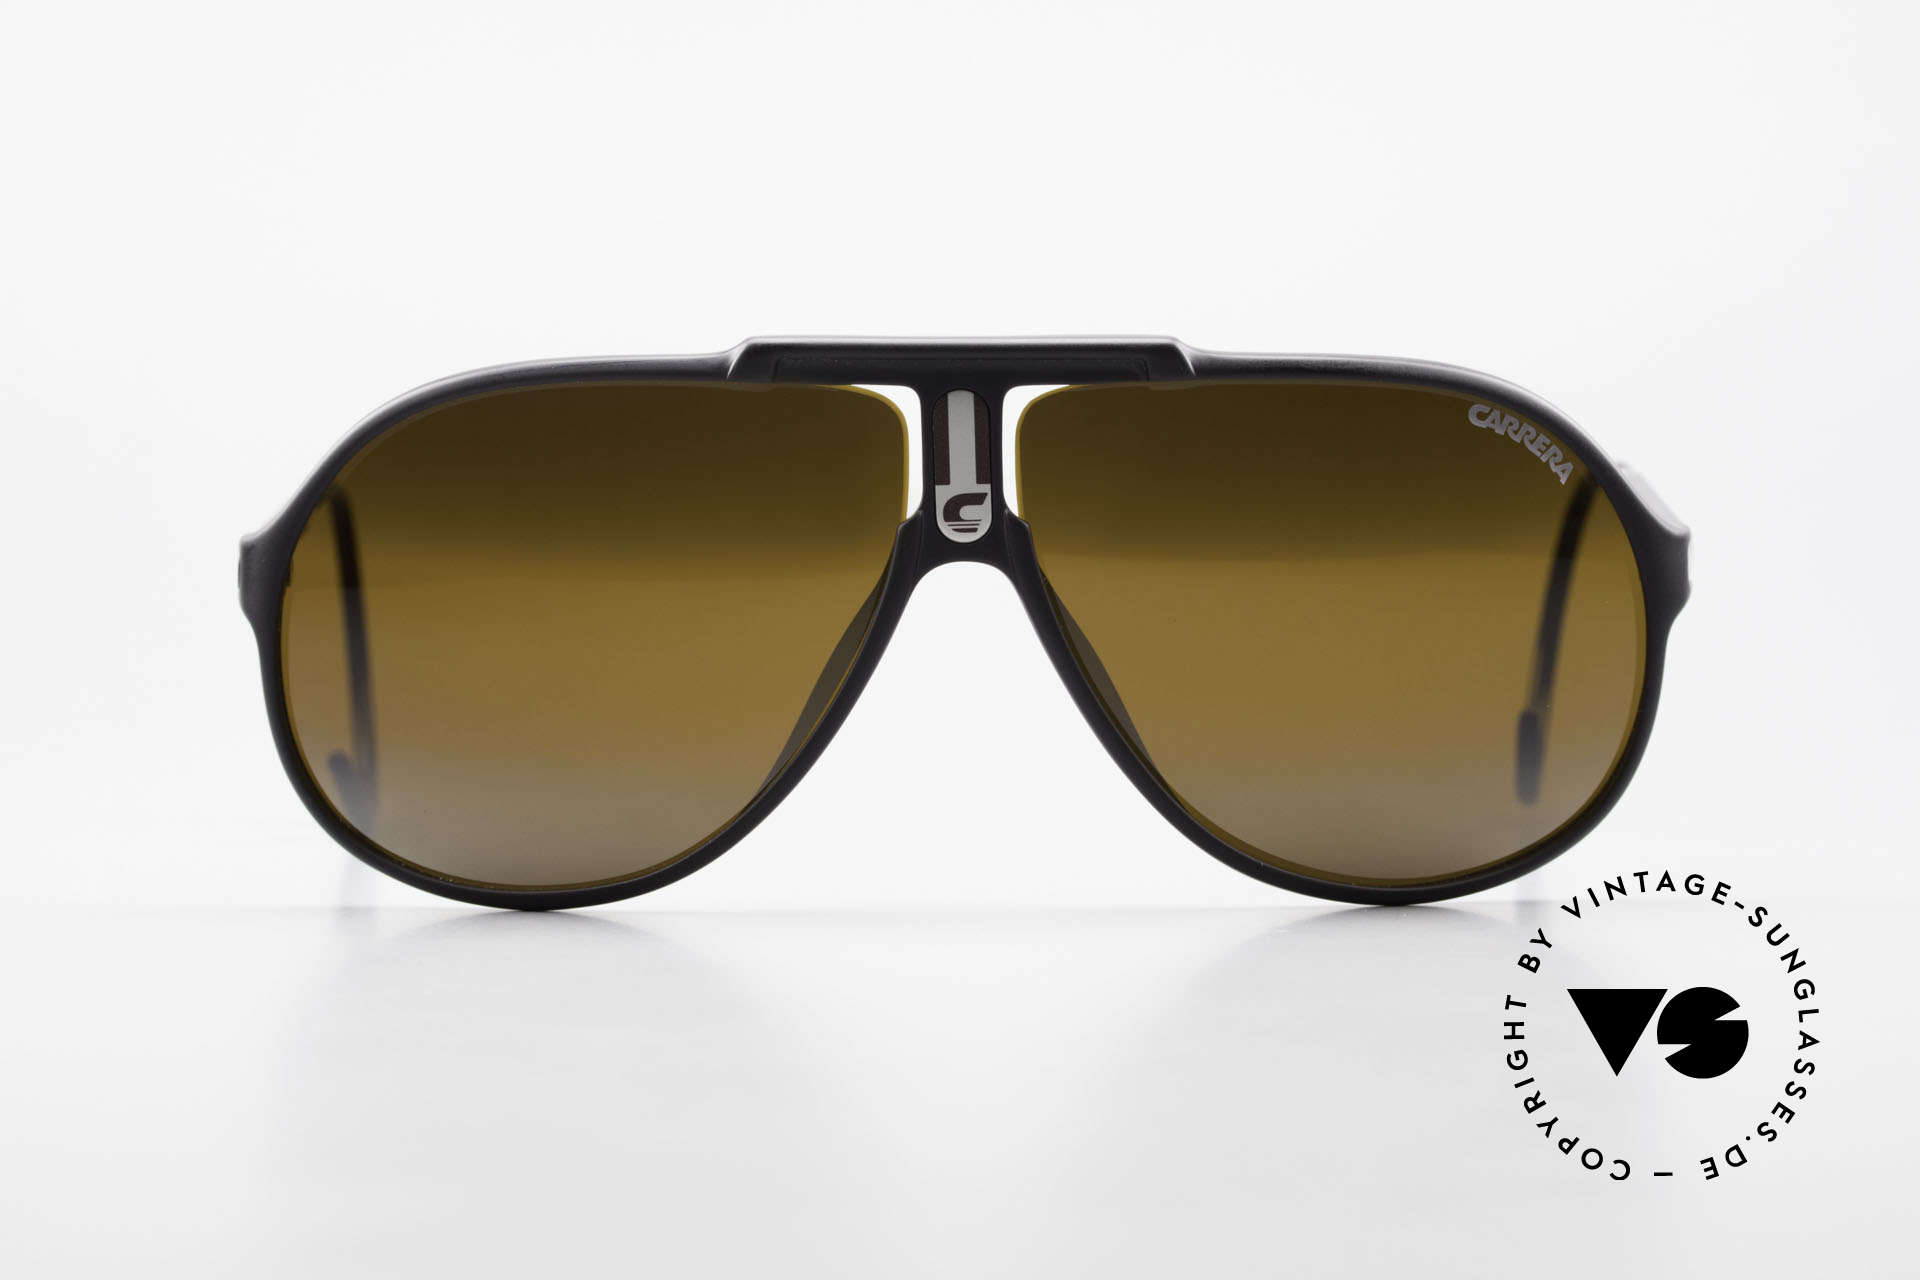 Carrera 5590 Mirrored Vario Sports Temples, with VARIO sports temples (adjustable temple length), Made for Men